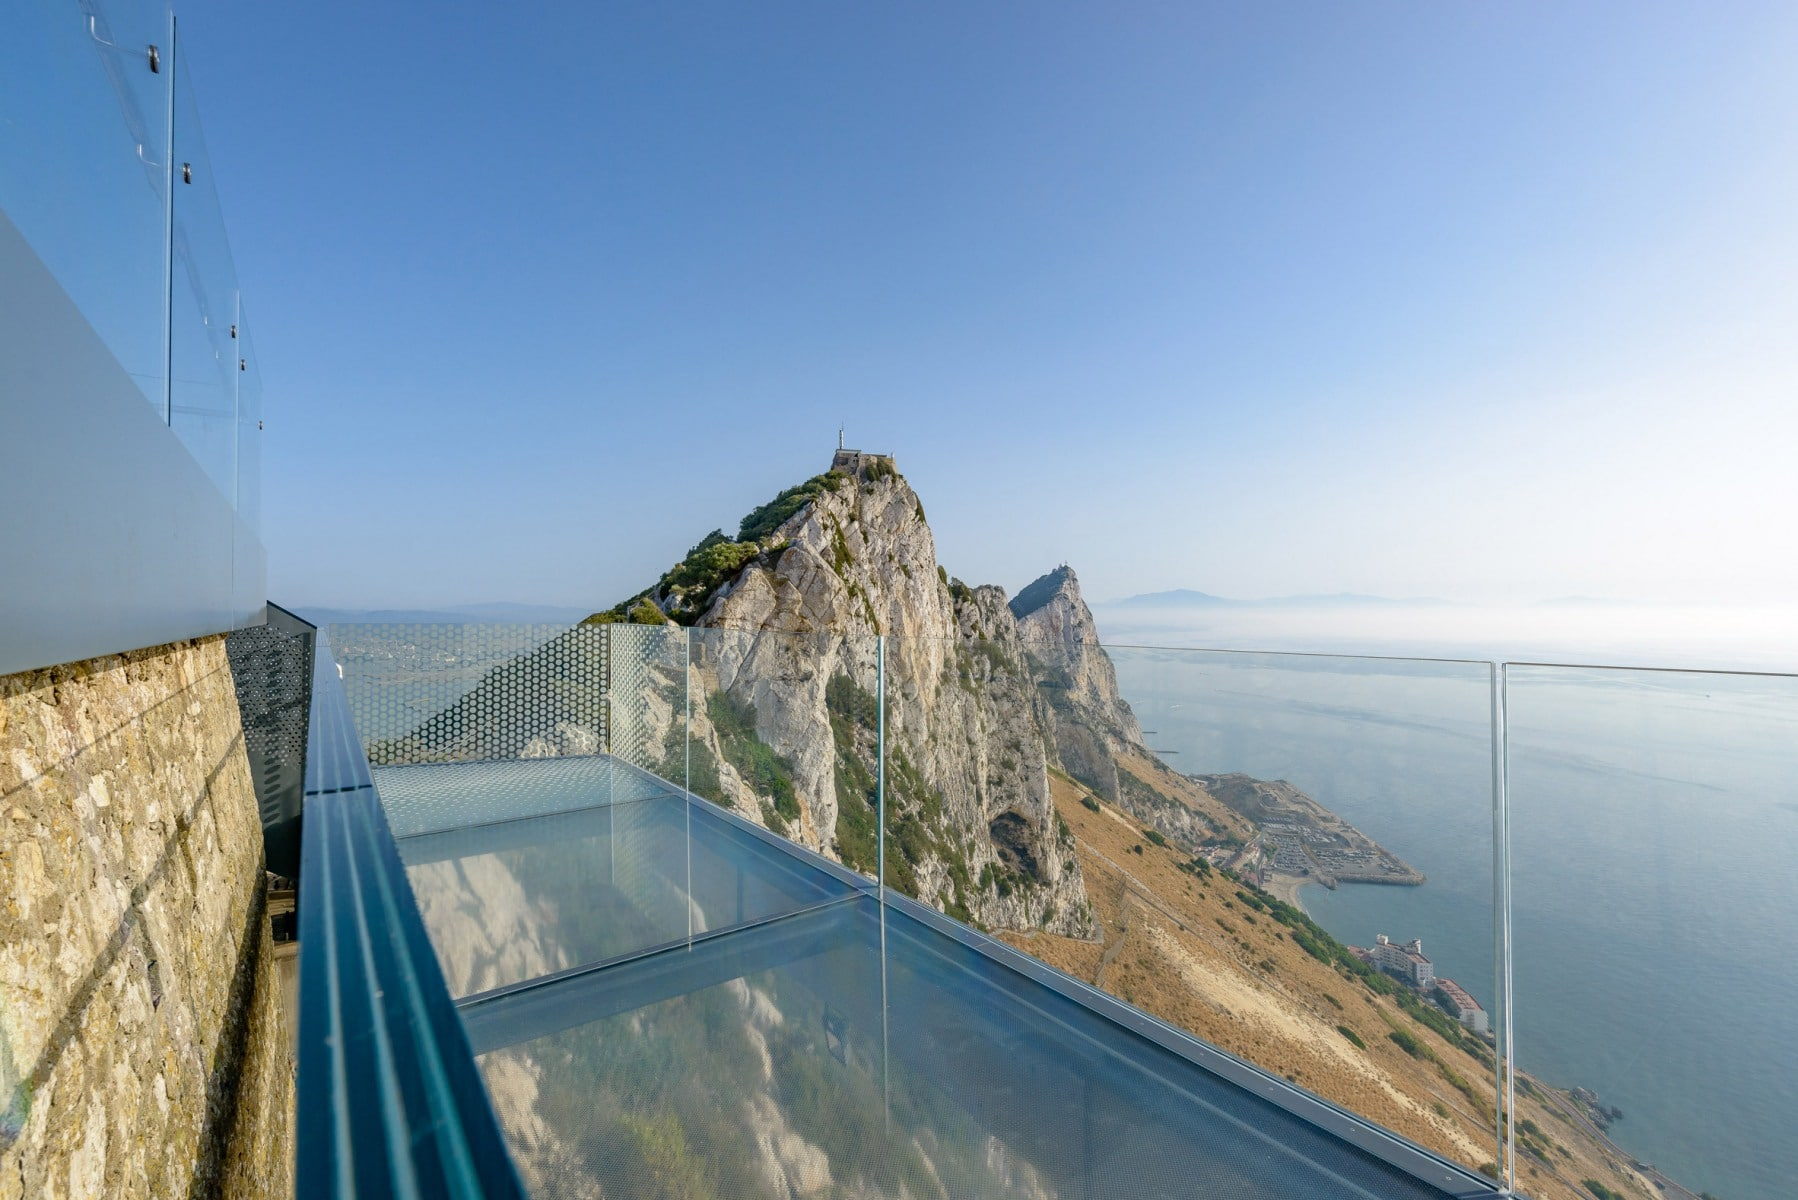 skywalk-gibraltar-12-photo-taken-for-bovis-koala-jv-by-meteogibs-photographer-stephen-ball_41367547470_o